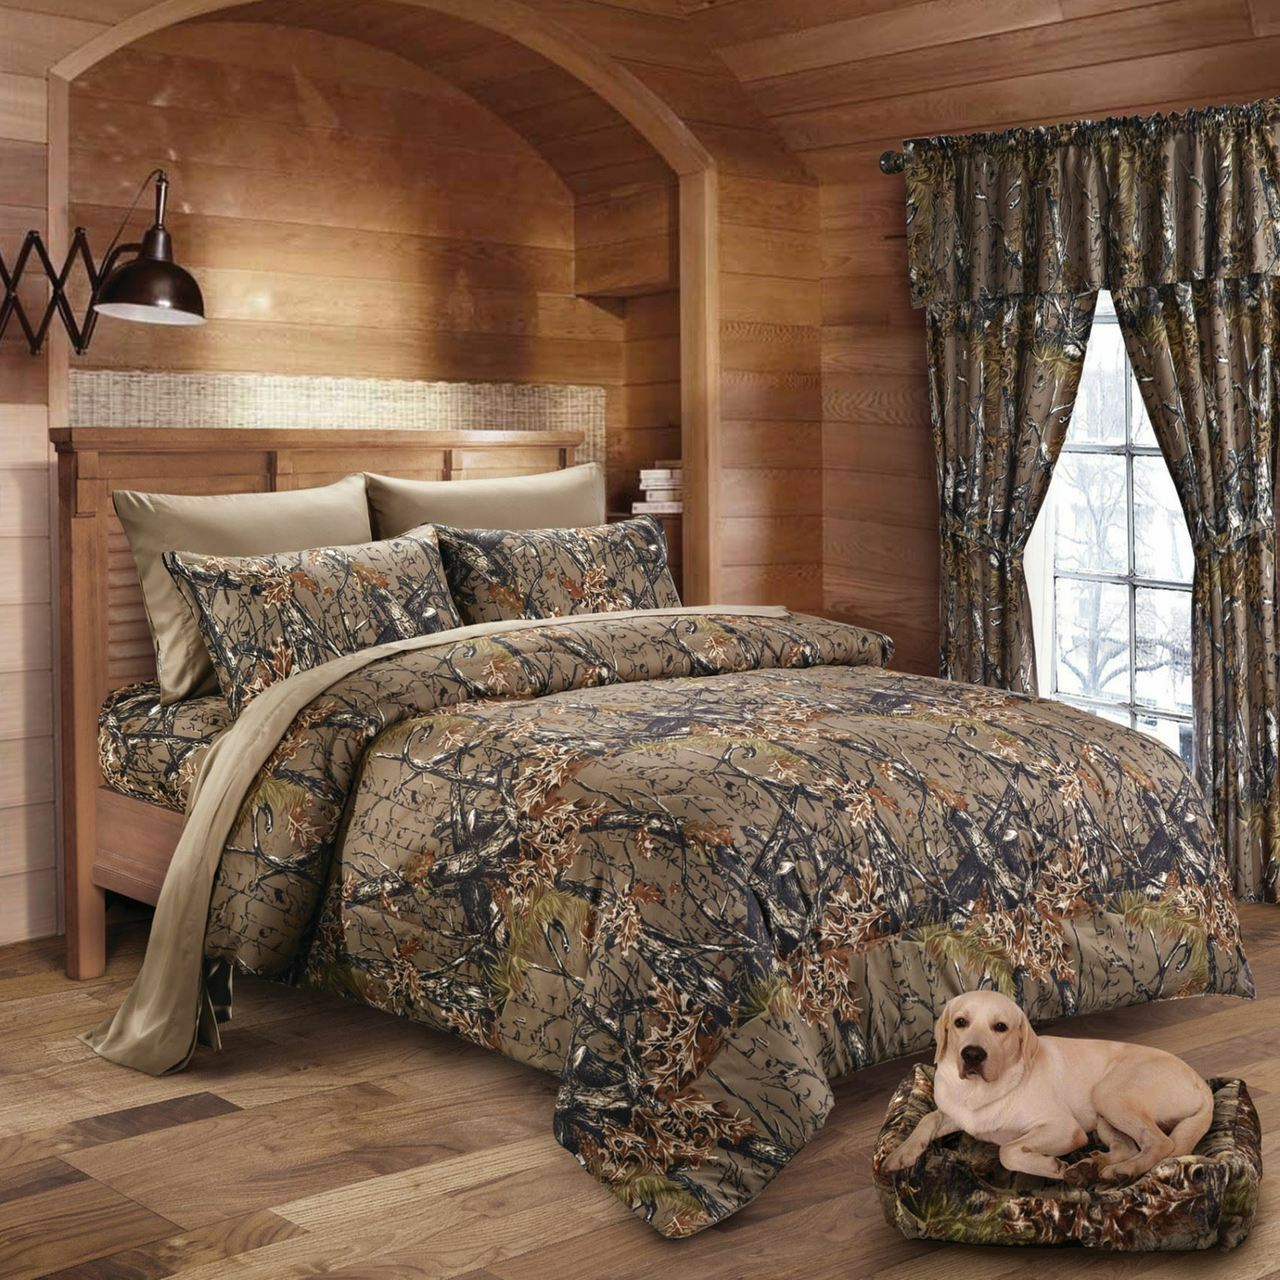 17 PC BROWN CAMO KING SIZE SET   COMFORTER SHEET CURTAIN CAMOUFLAGE BEDDING